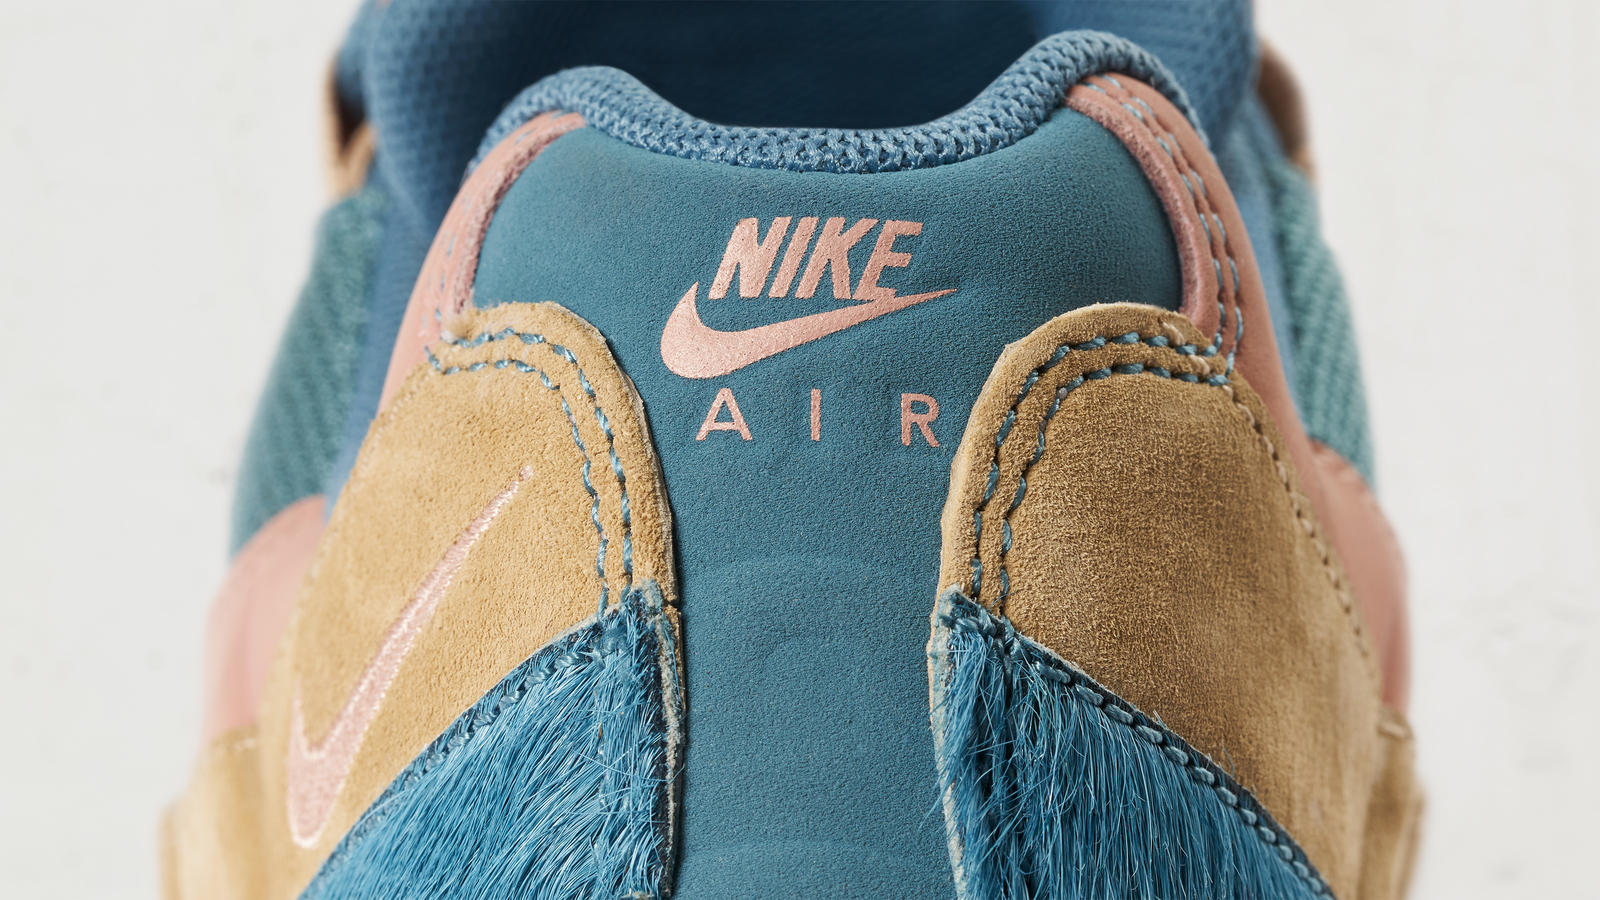 Air max 95 blue fur 1 hd 1600